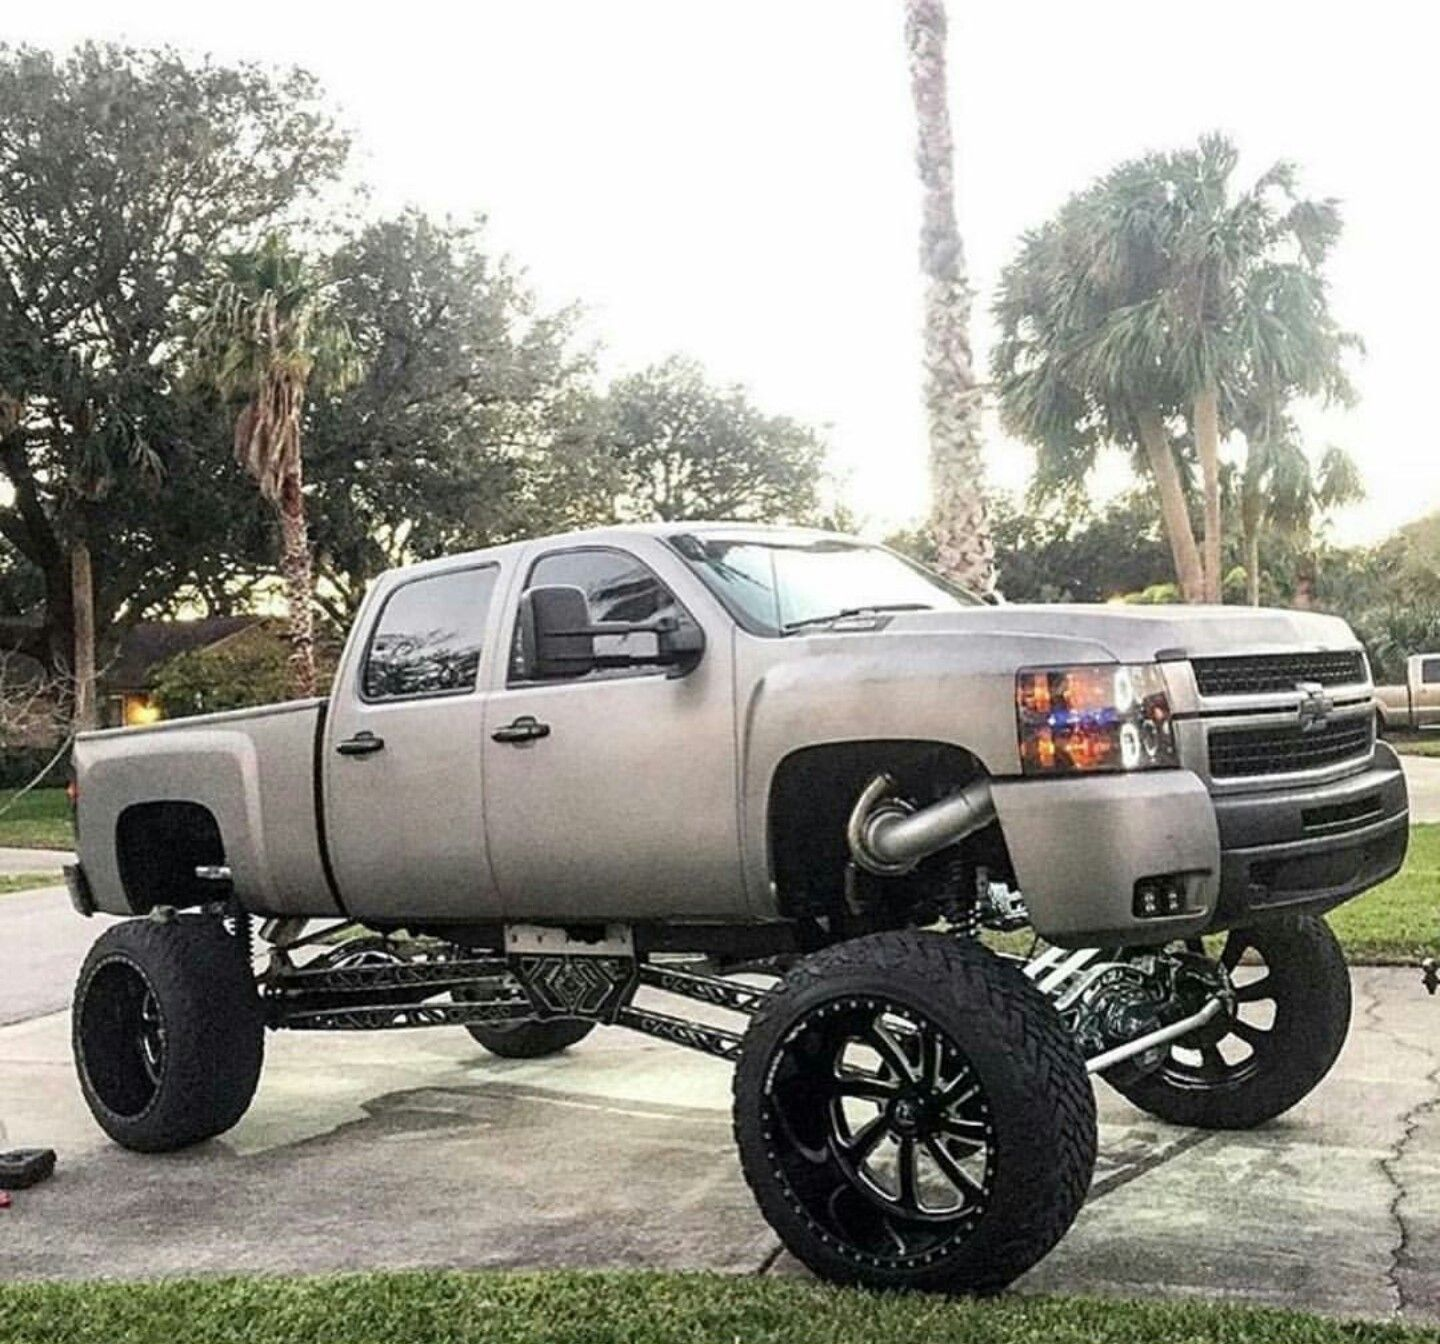 Chevy Silverado 2500 4x4 >> Lifted Chevy 2500 Duramax | www.pixshark.com - Images Galleries With A Bite!